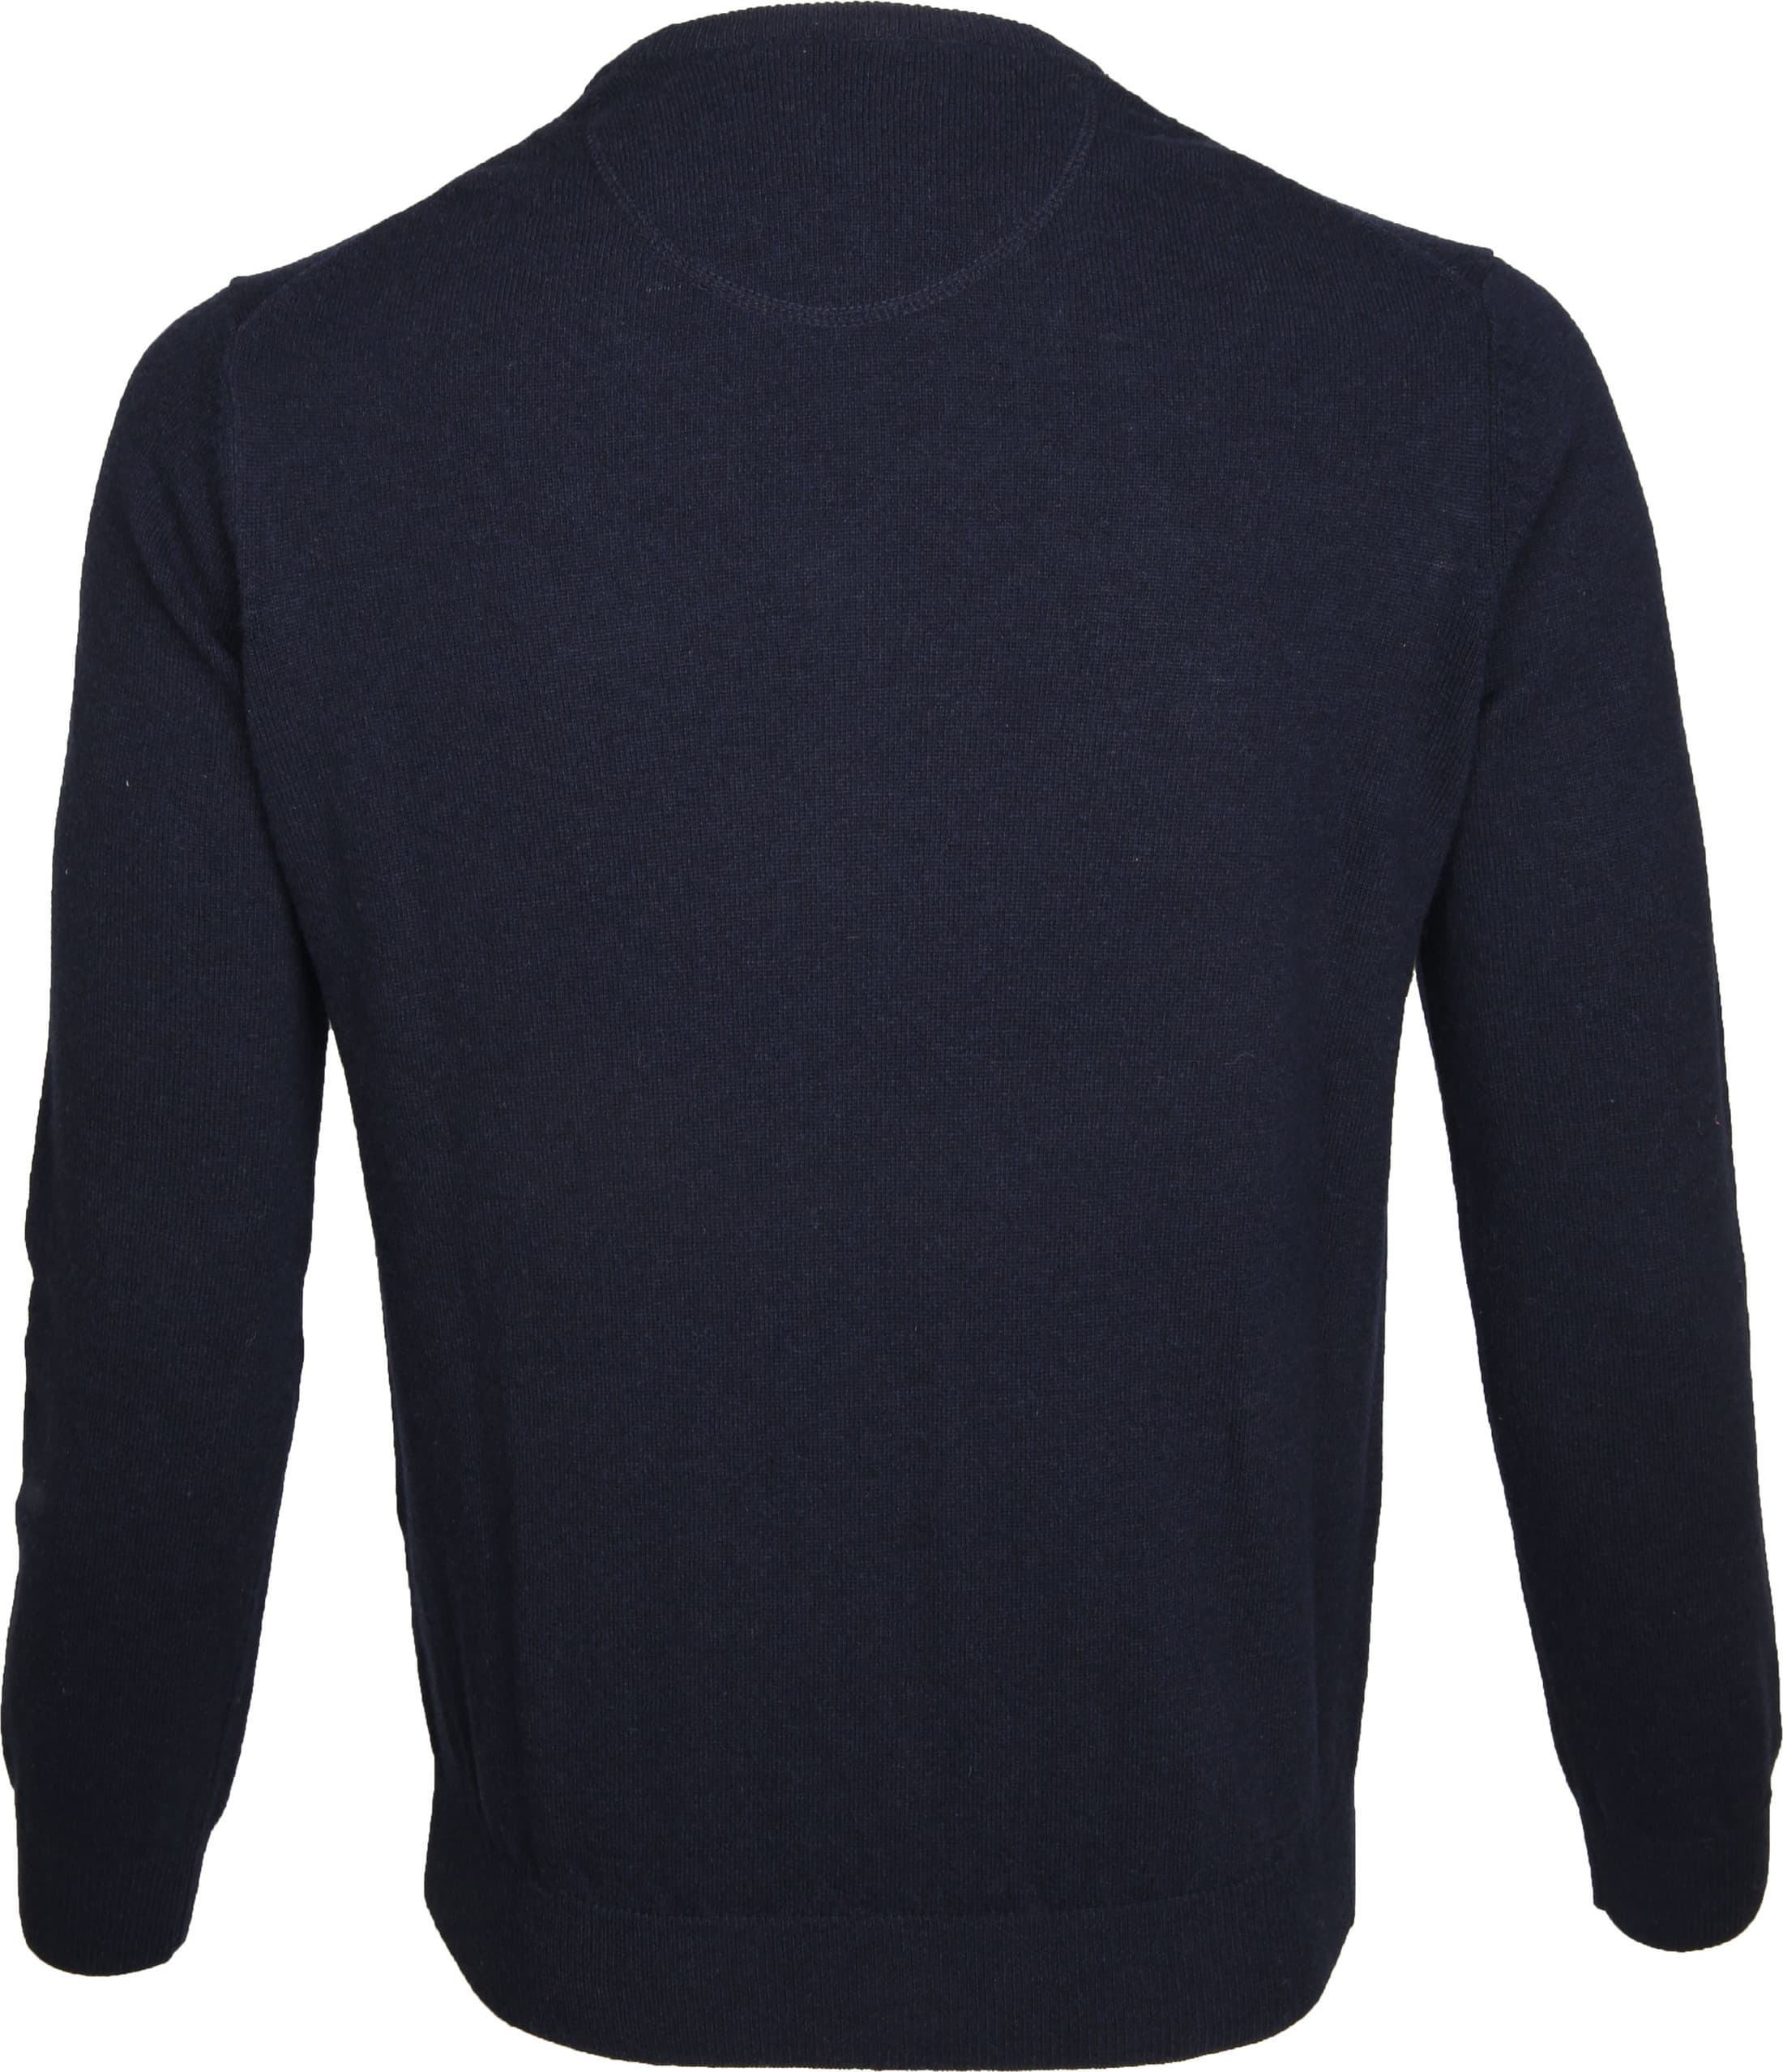 Suitable Pullover Lambswool V-Neck Navy foto 2